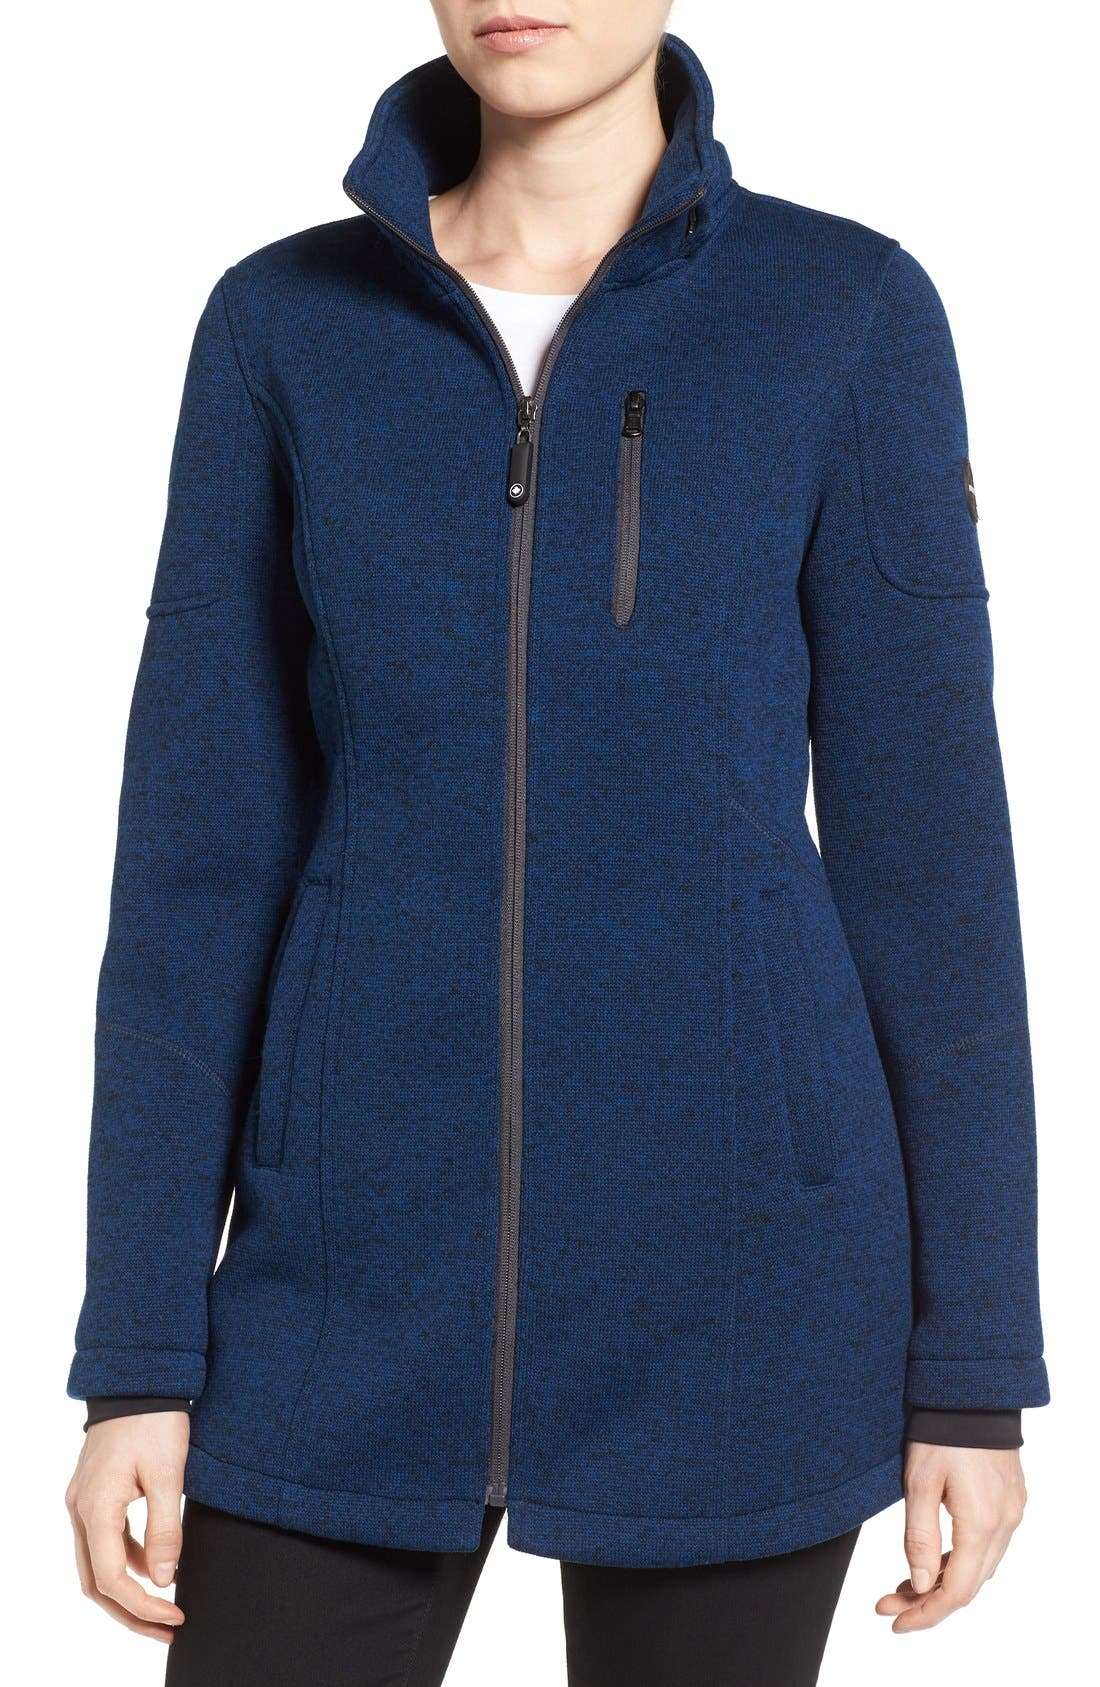 Bonded Knit Zip Front Jacket,                             Alternate thumbnail 4, color,                             Navy